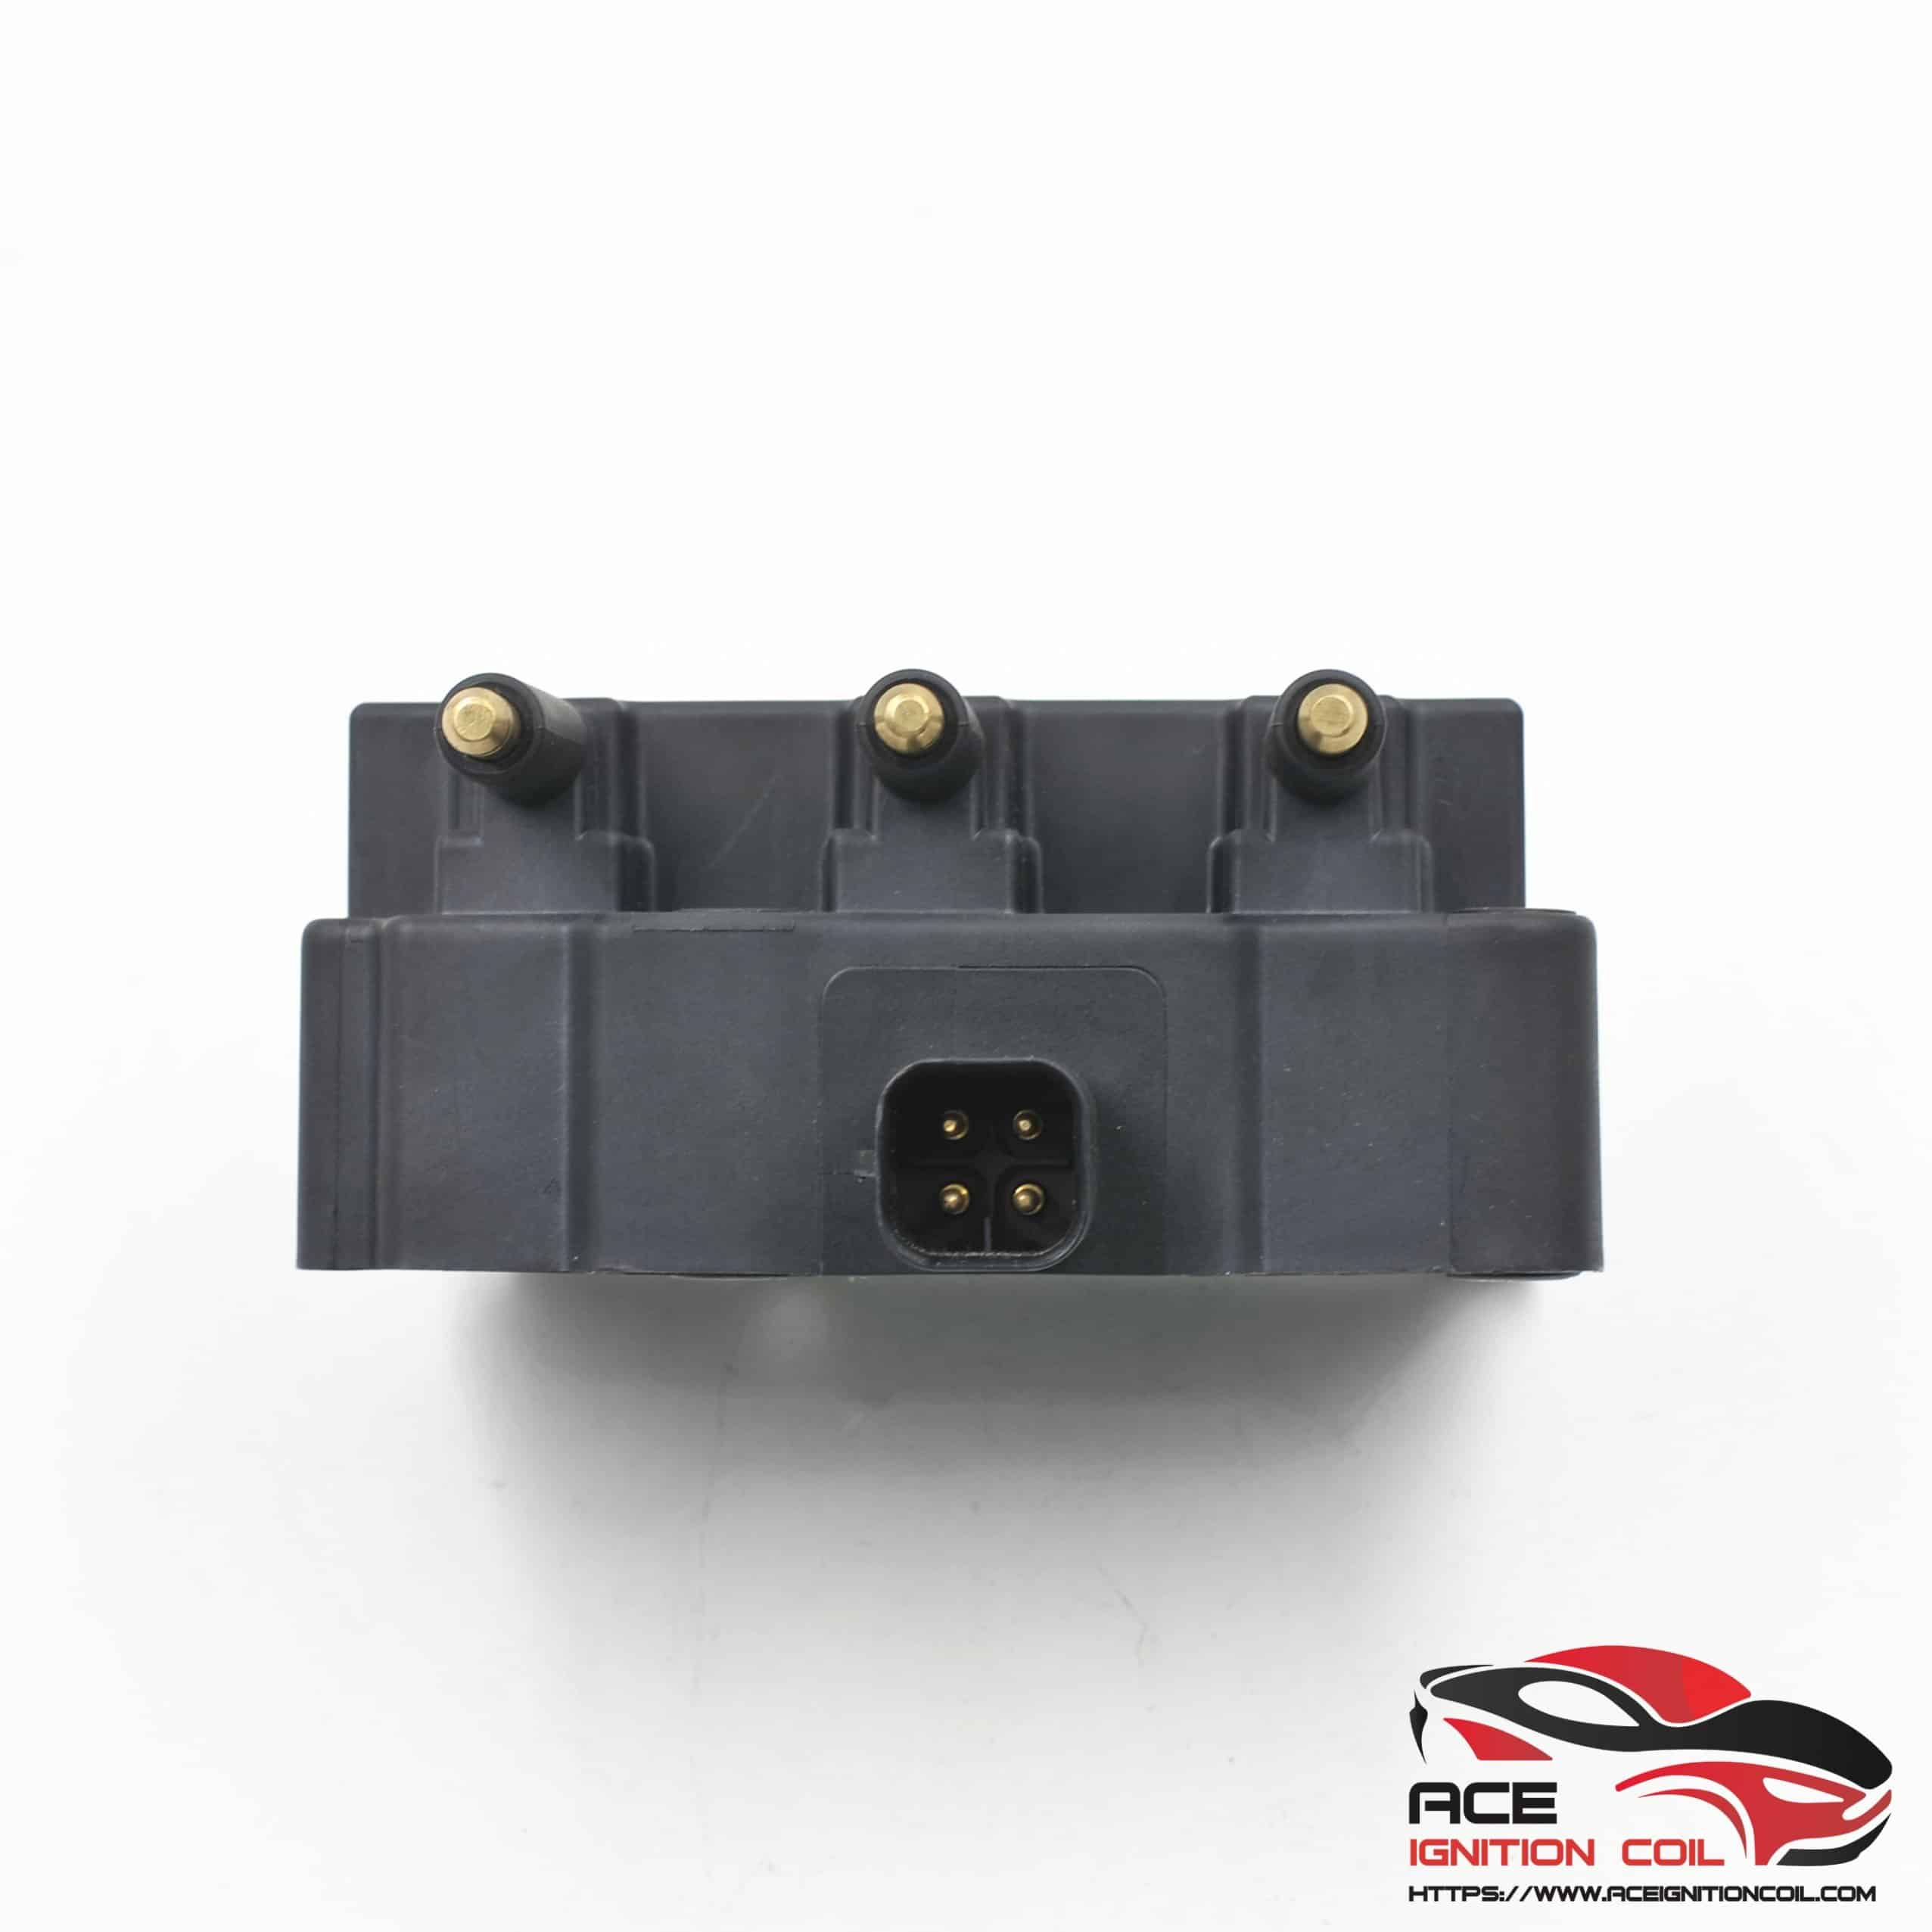 Chrysler replacement ignition coil 4848841AA 53006565 88921319